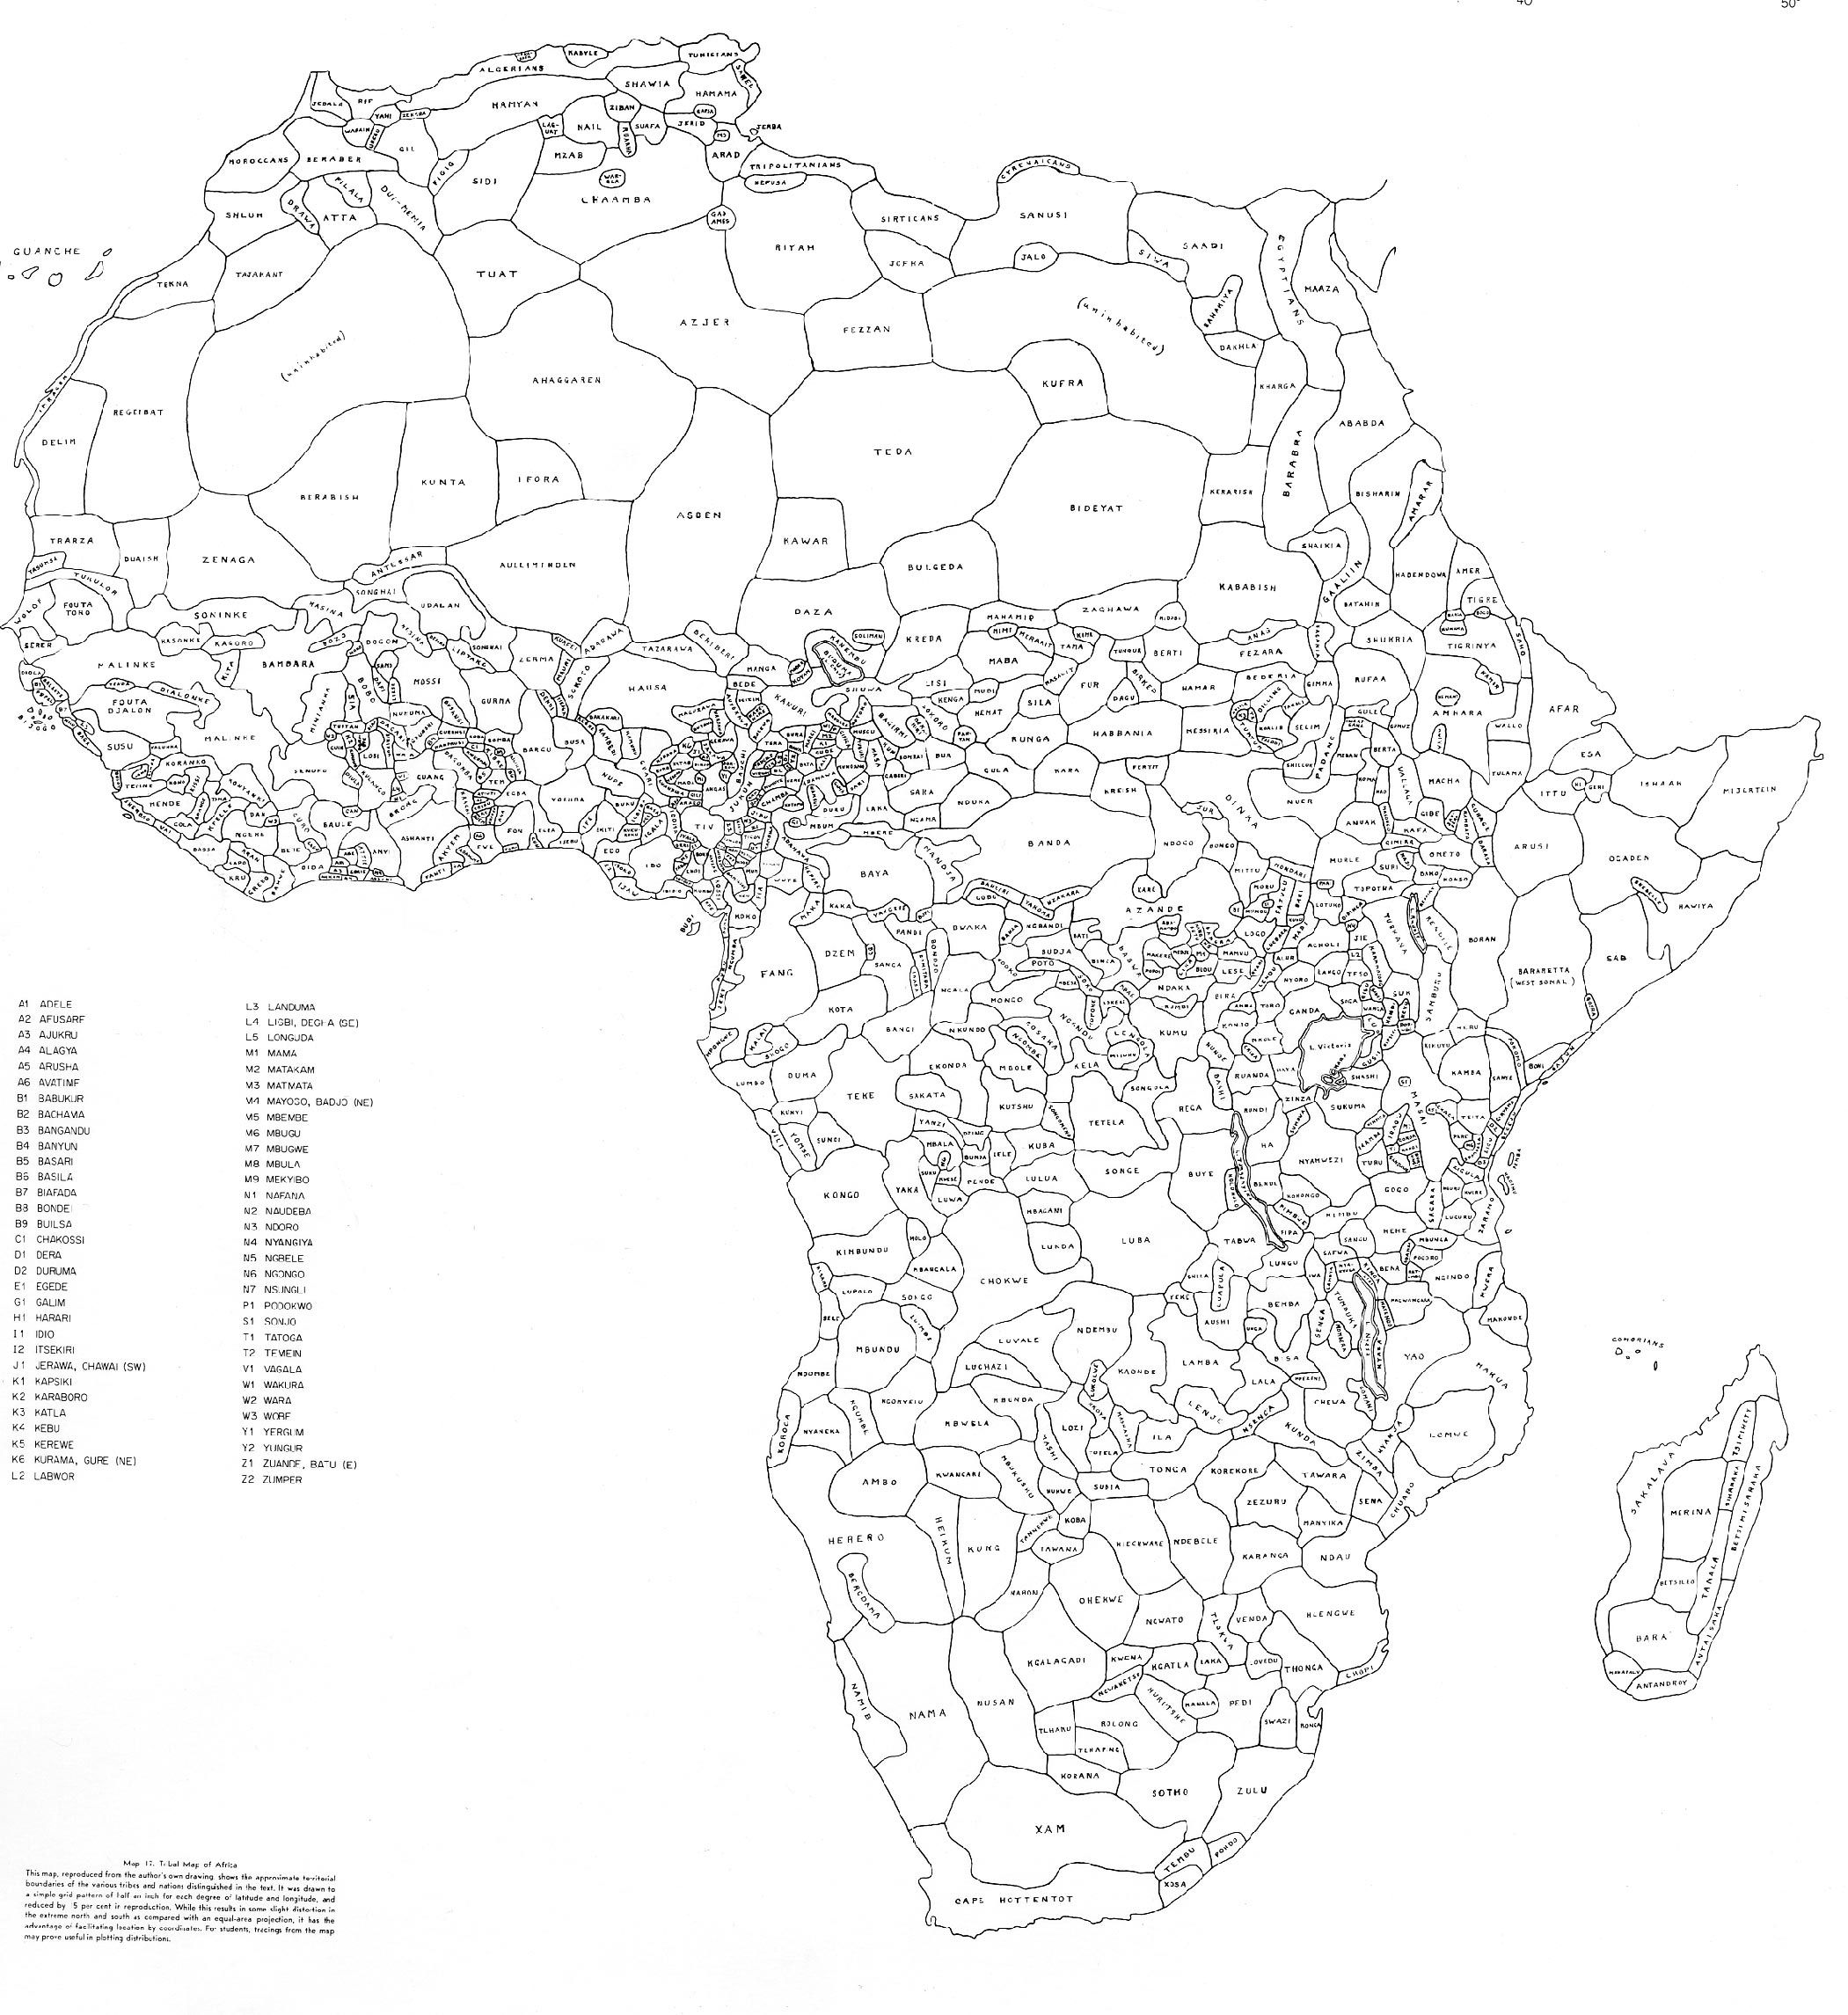 Tribal Map of Africa (To enlarge this image please click